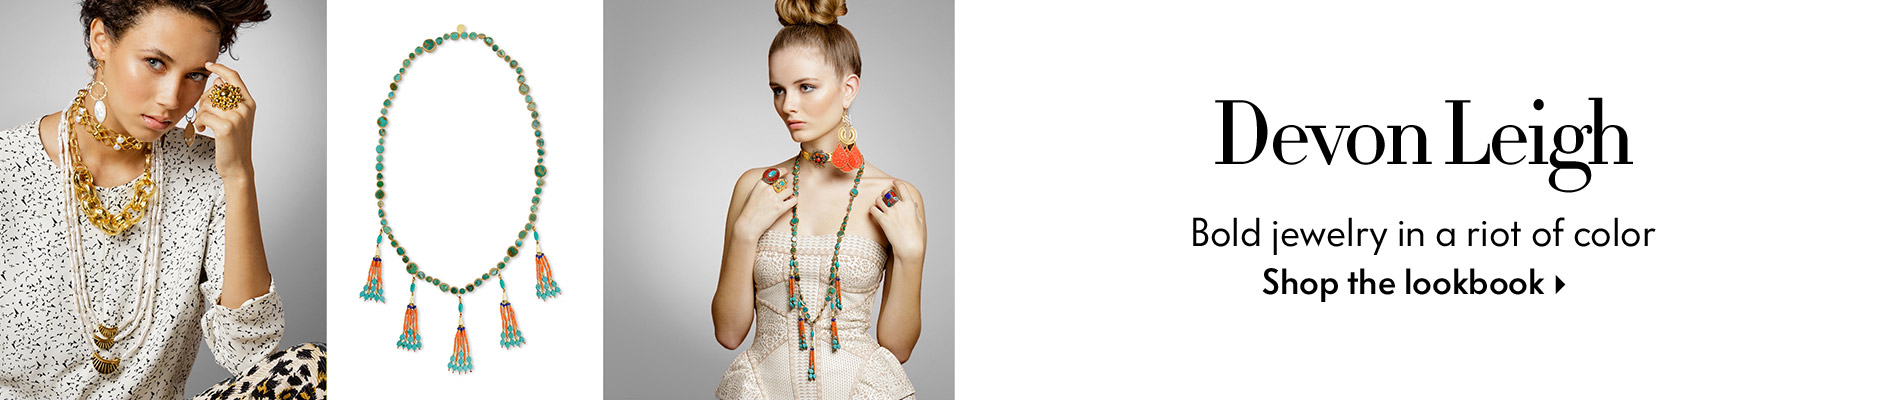 Devon Leigh - Bold jewelry in a riot of color - Shop the Lookbook